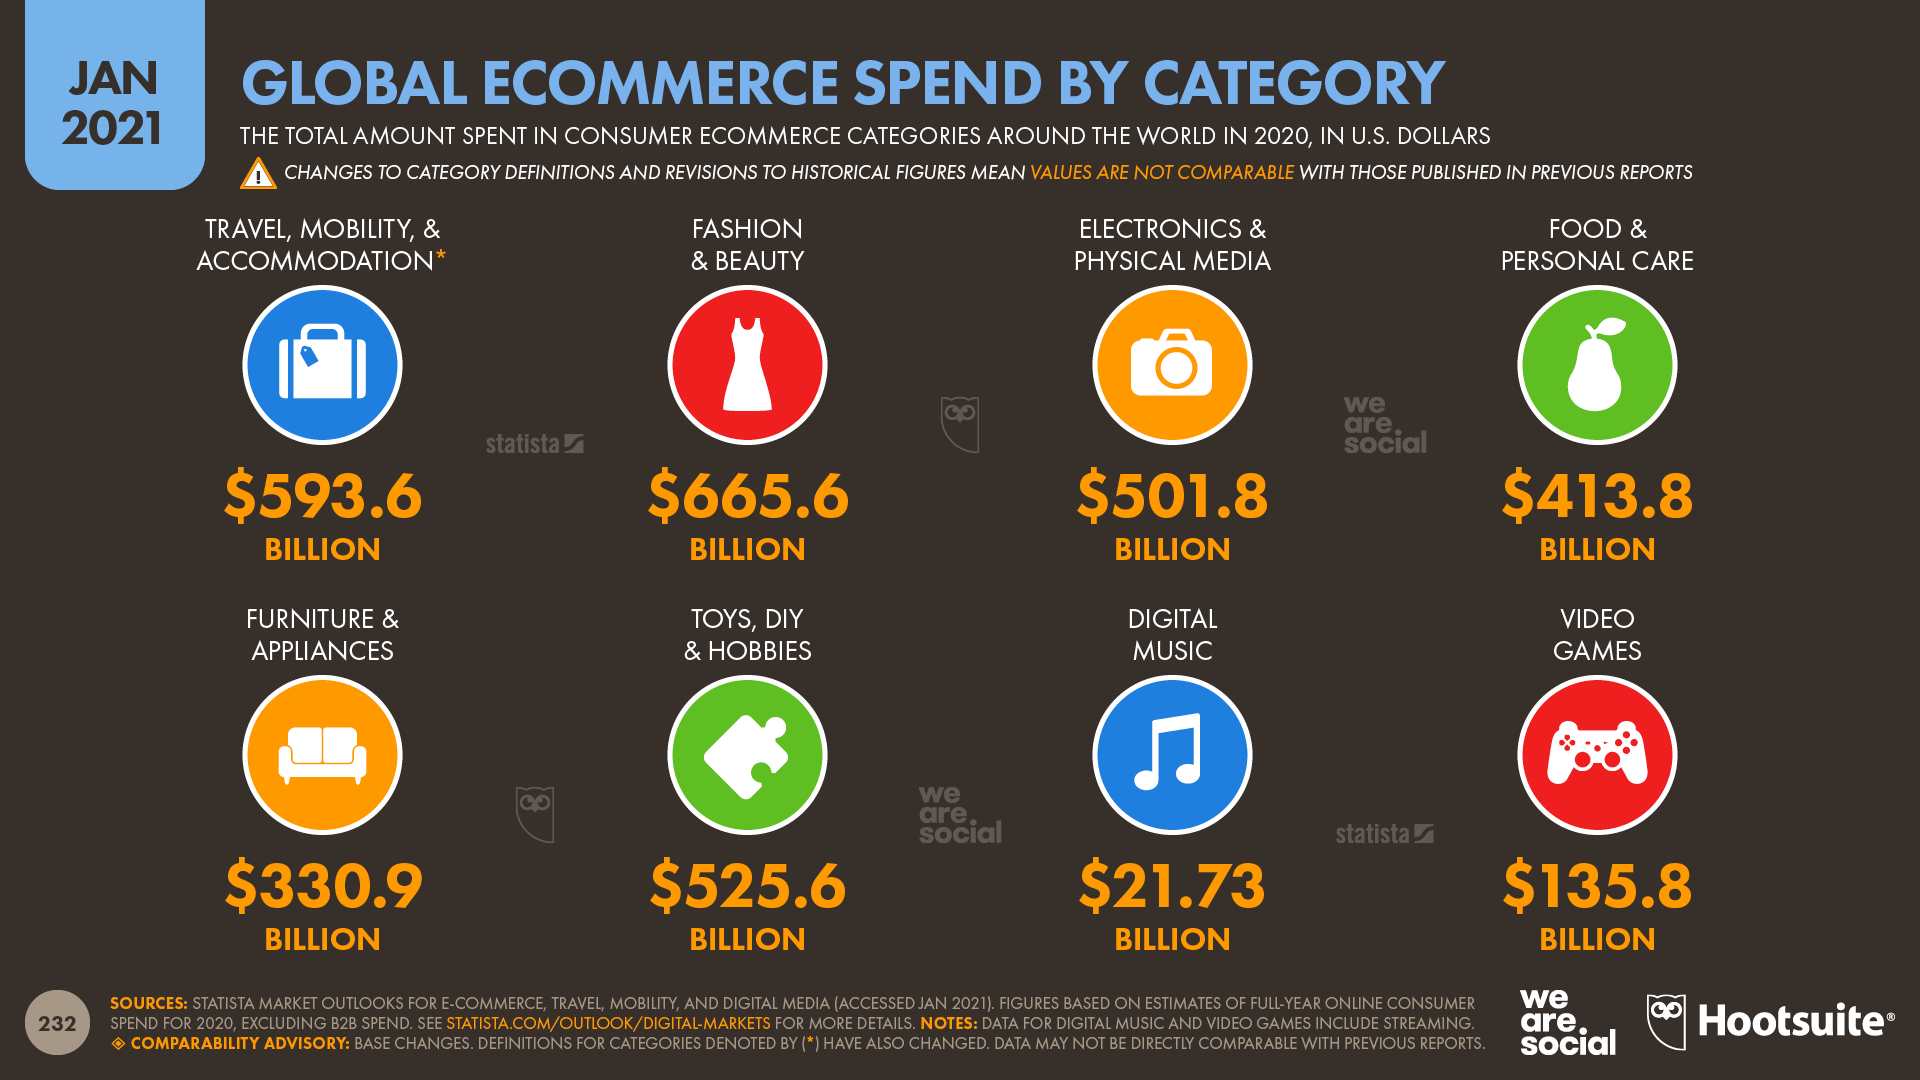 Global Ecommerce Spend in 2020 by Category January 2021 DataReportal